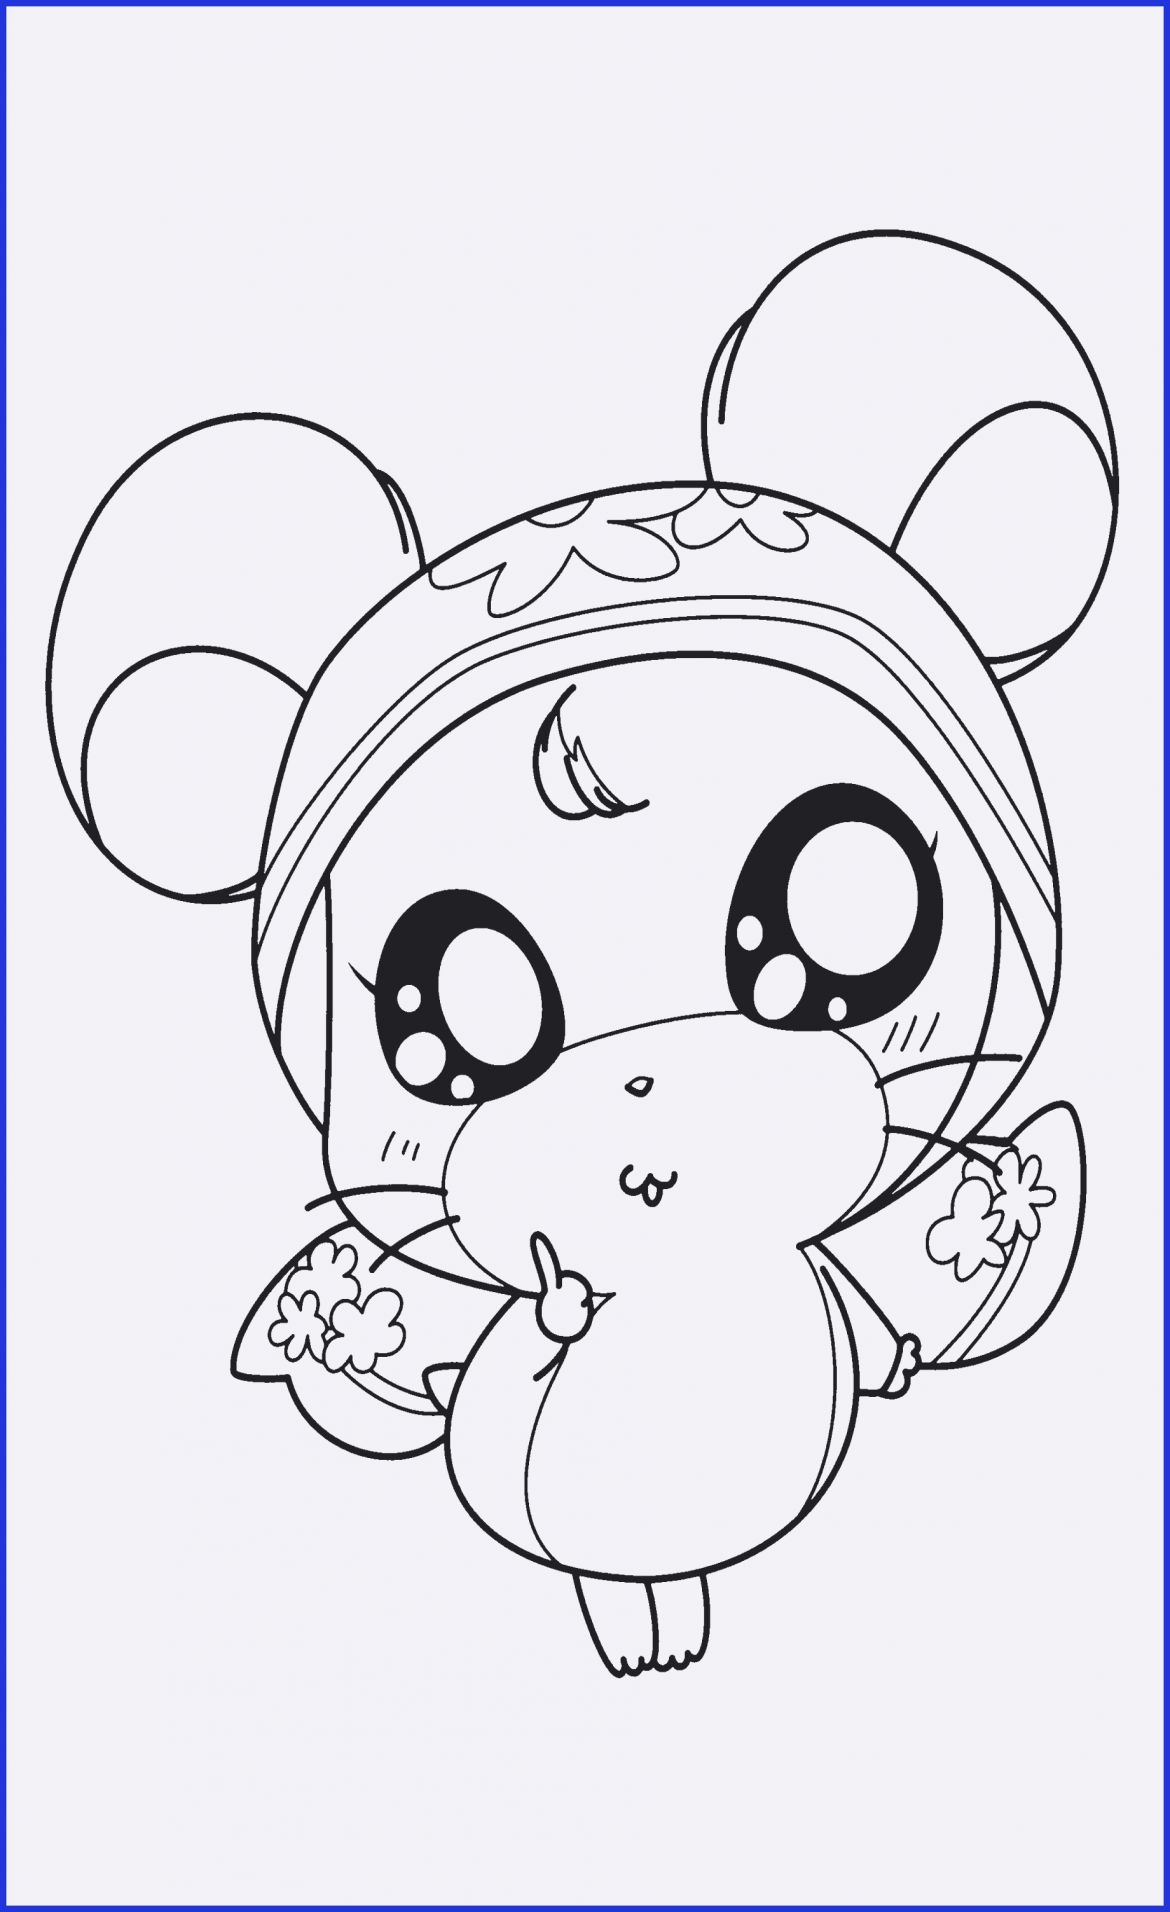 Giant Panda Coloring Pages  to Print 7f - Free For Children